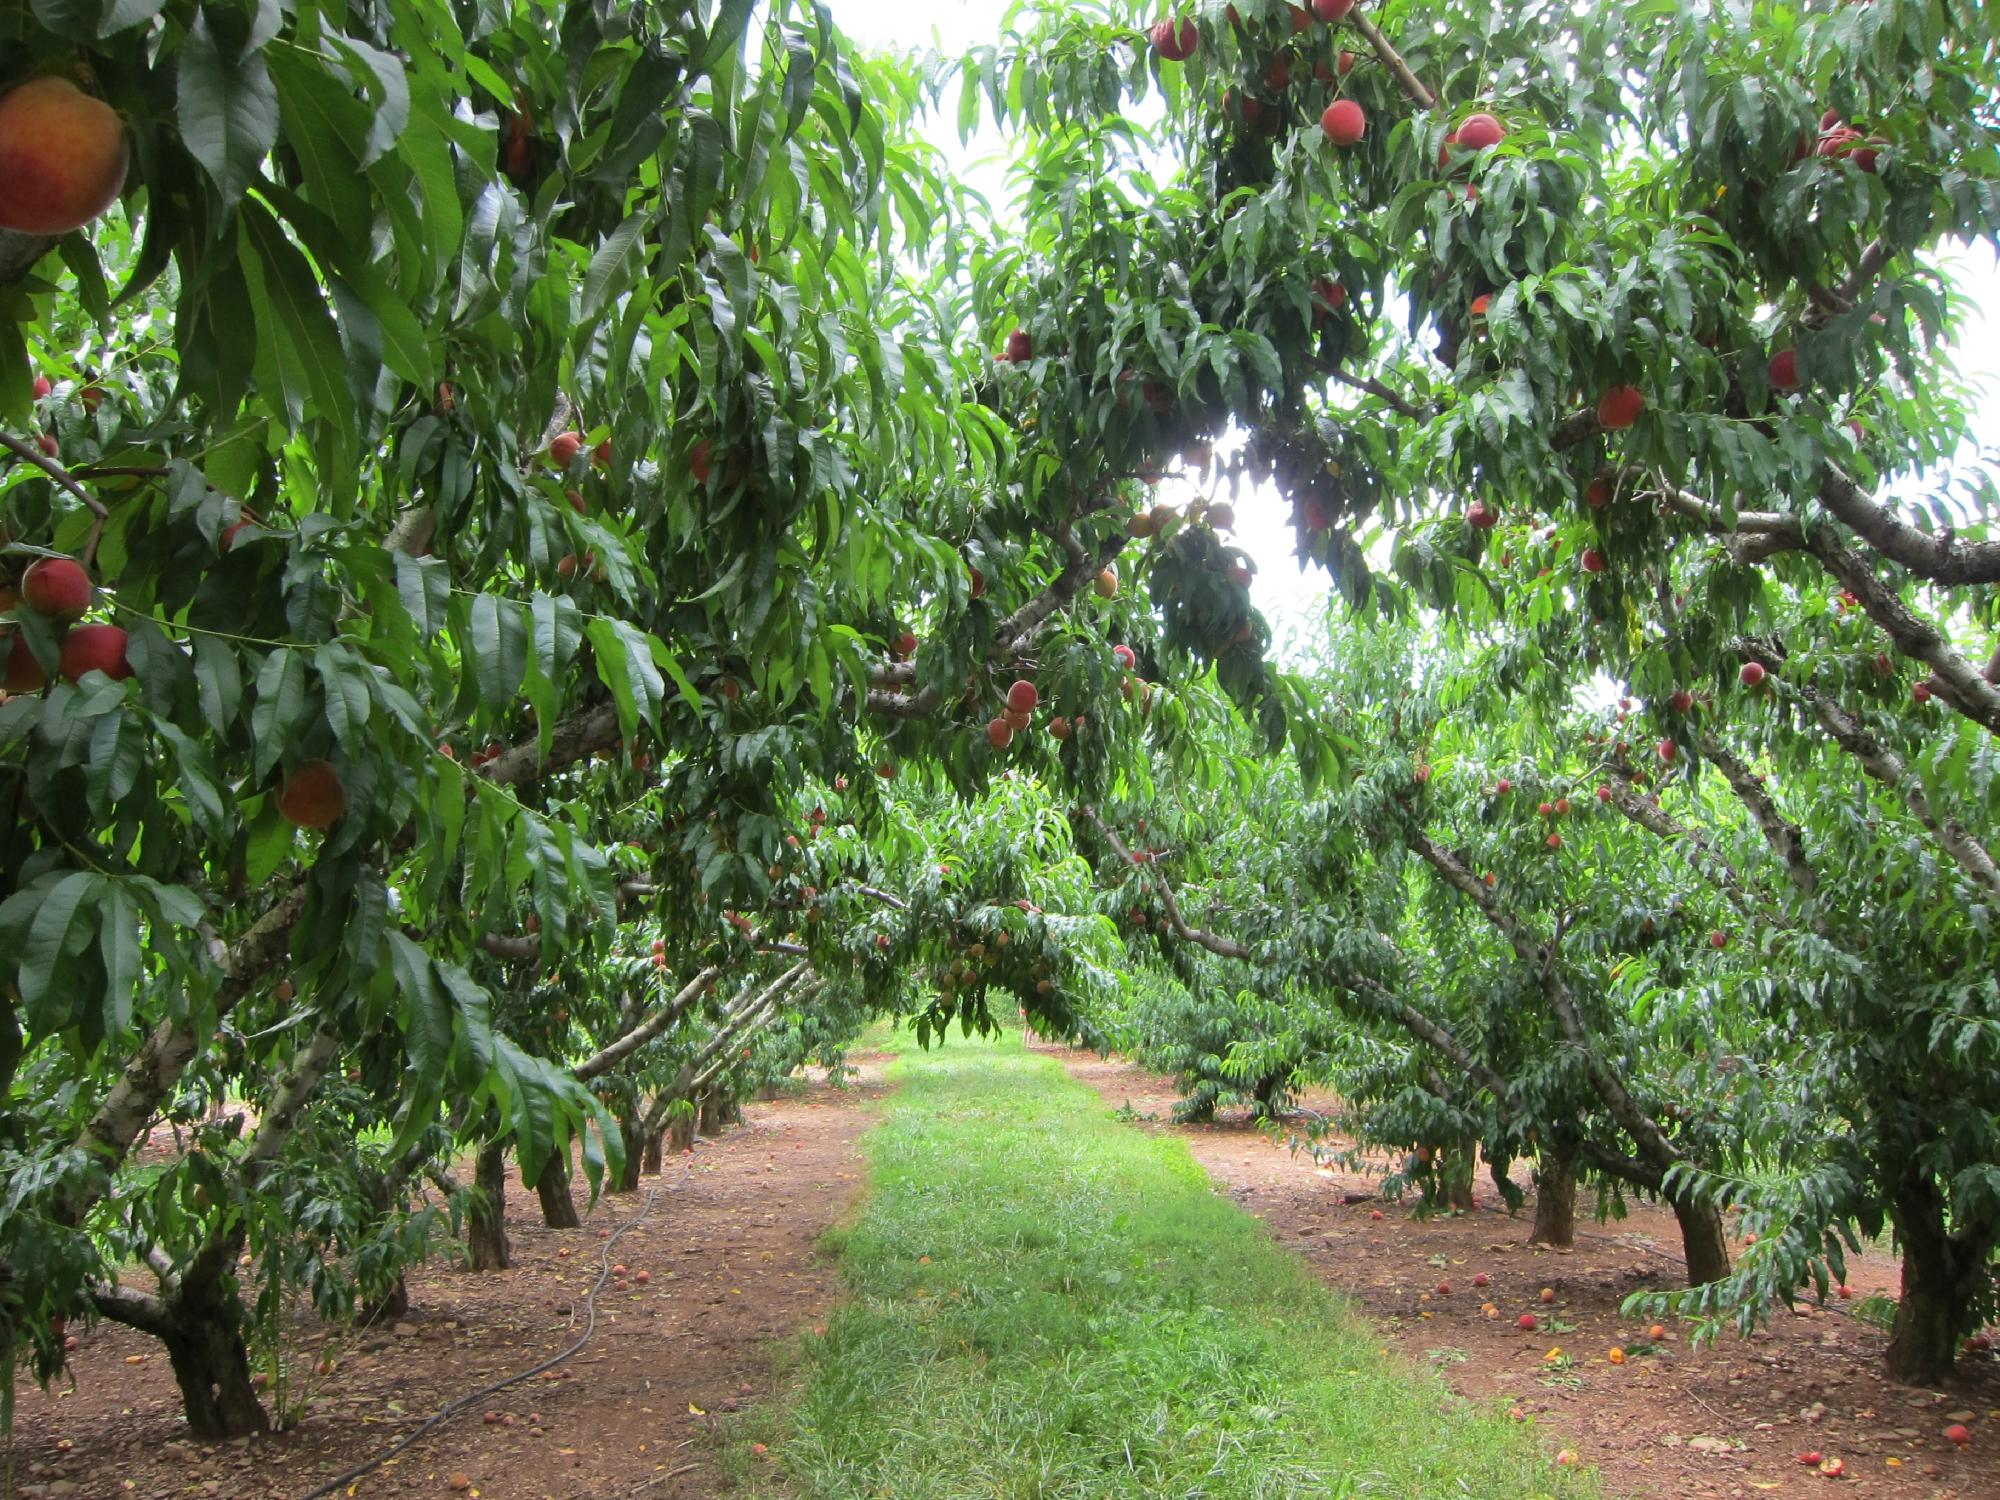 chile's peach orchard, google images